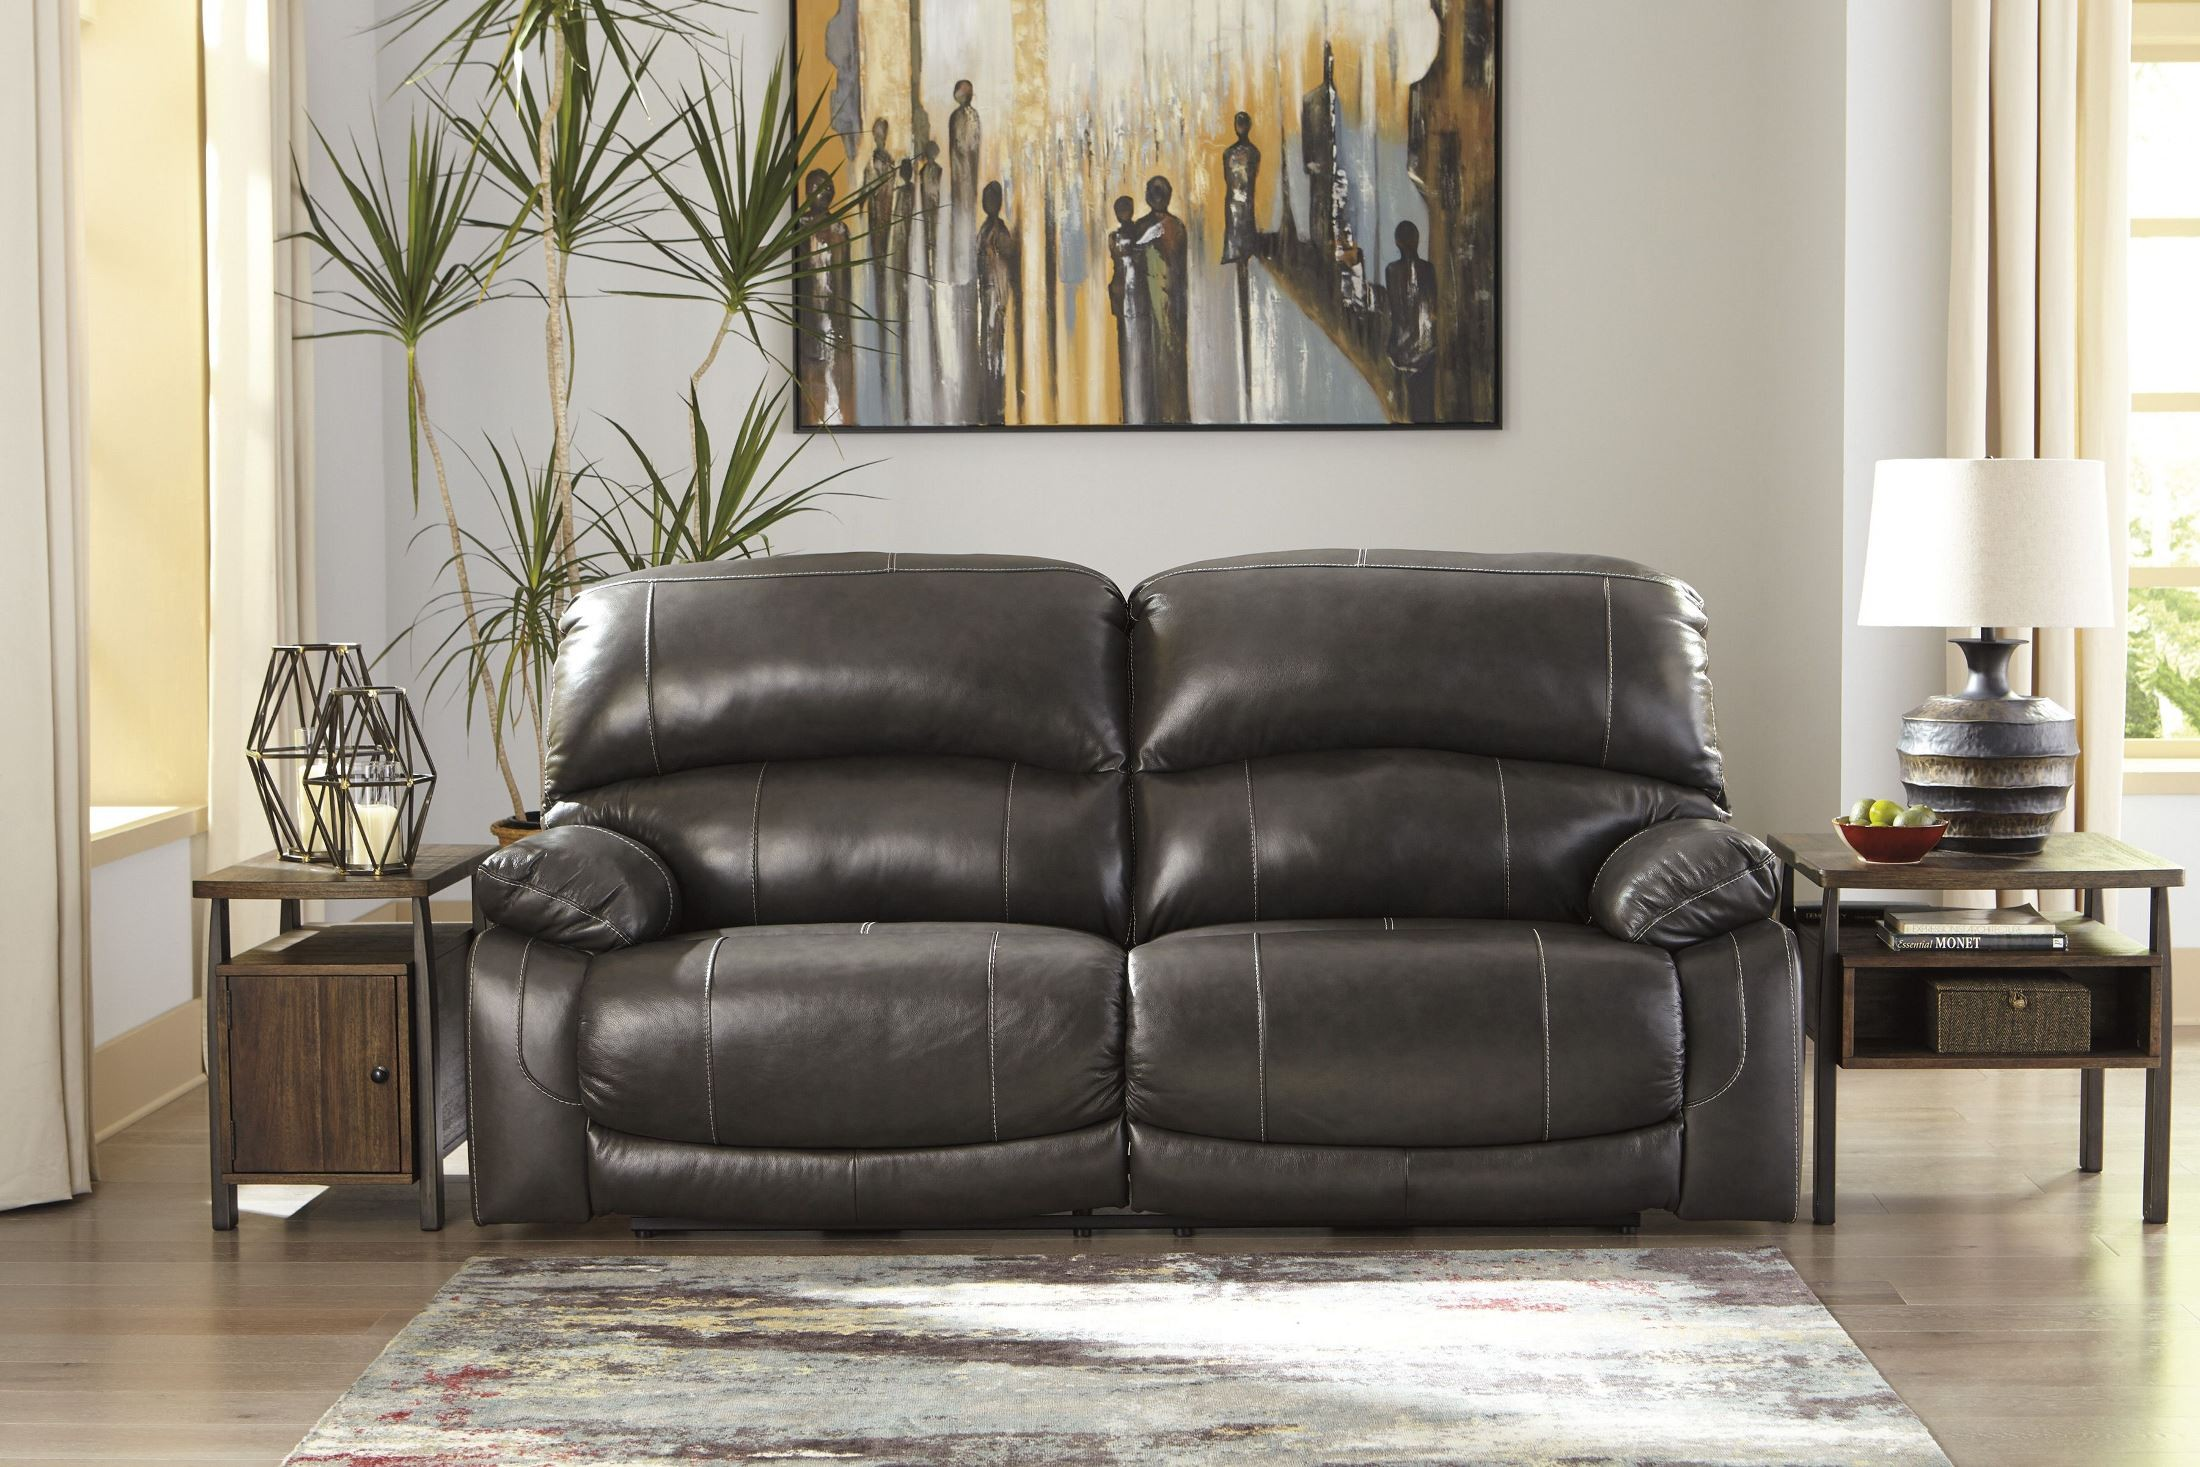 Hallstrung Gray 2 Seat Reclining Power Sofa From Ashley